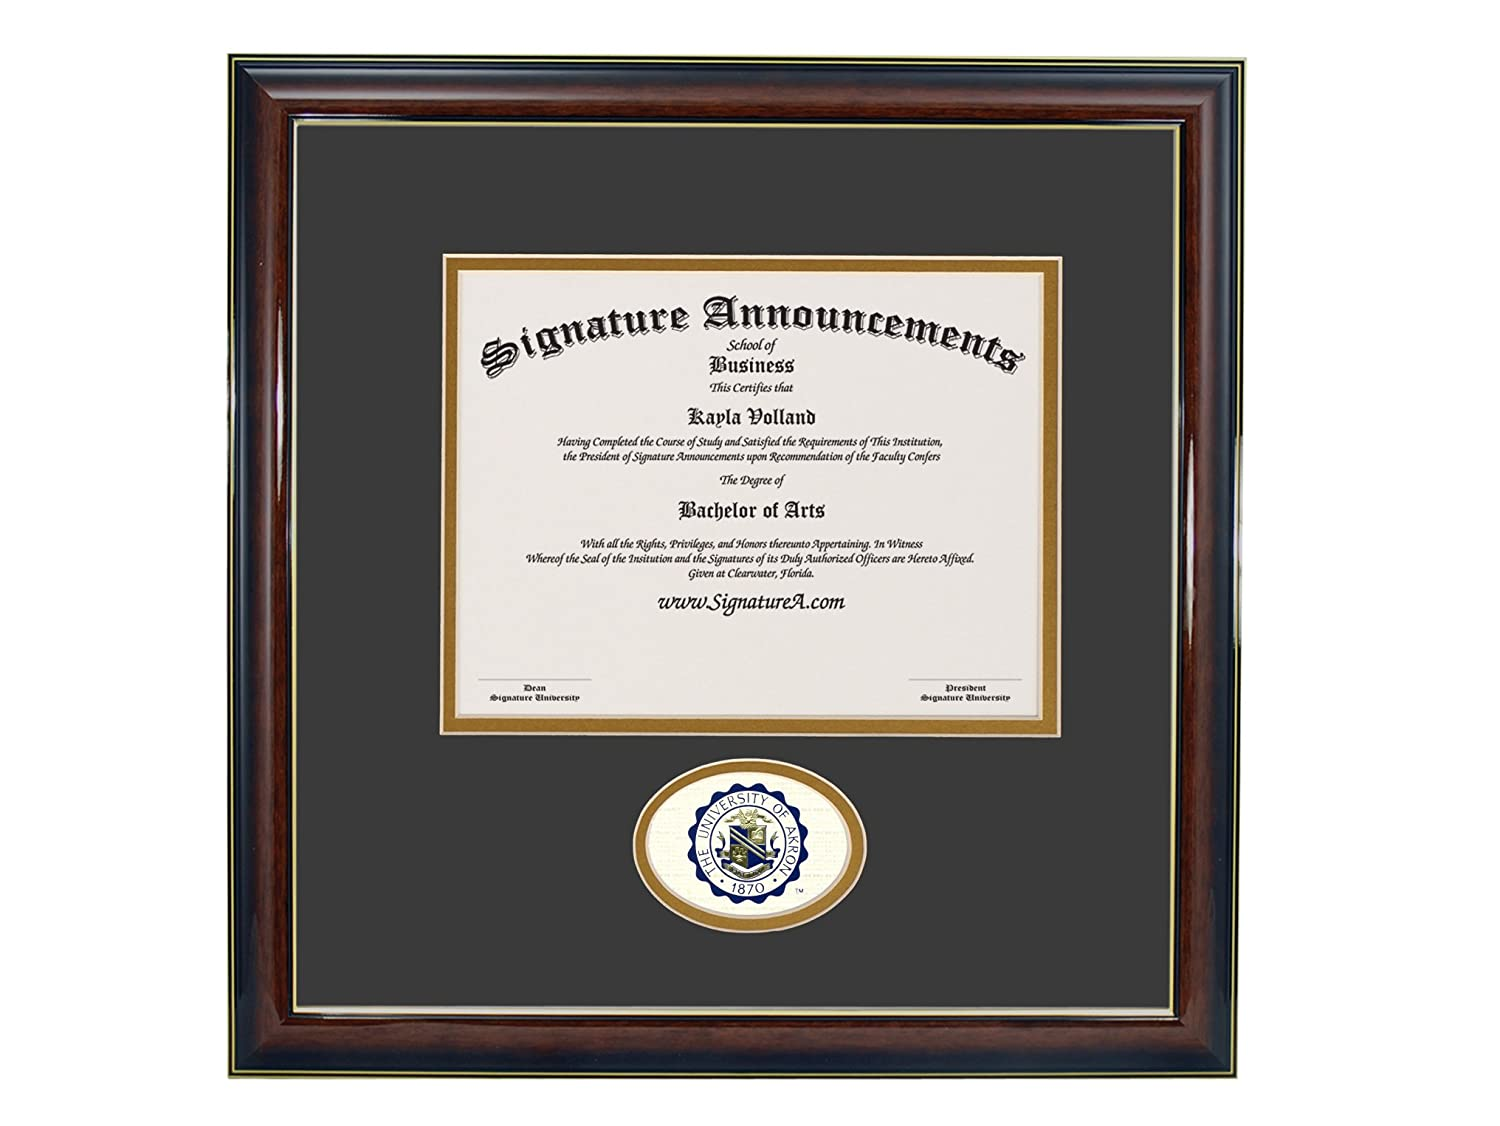 Signature Announcements University-of-Akron Doctorate Sculpted Foil Seal Graduation Diploma Frame 16 x 16 Gold Accent Gloss Mahogany